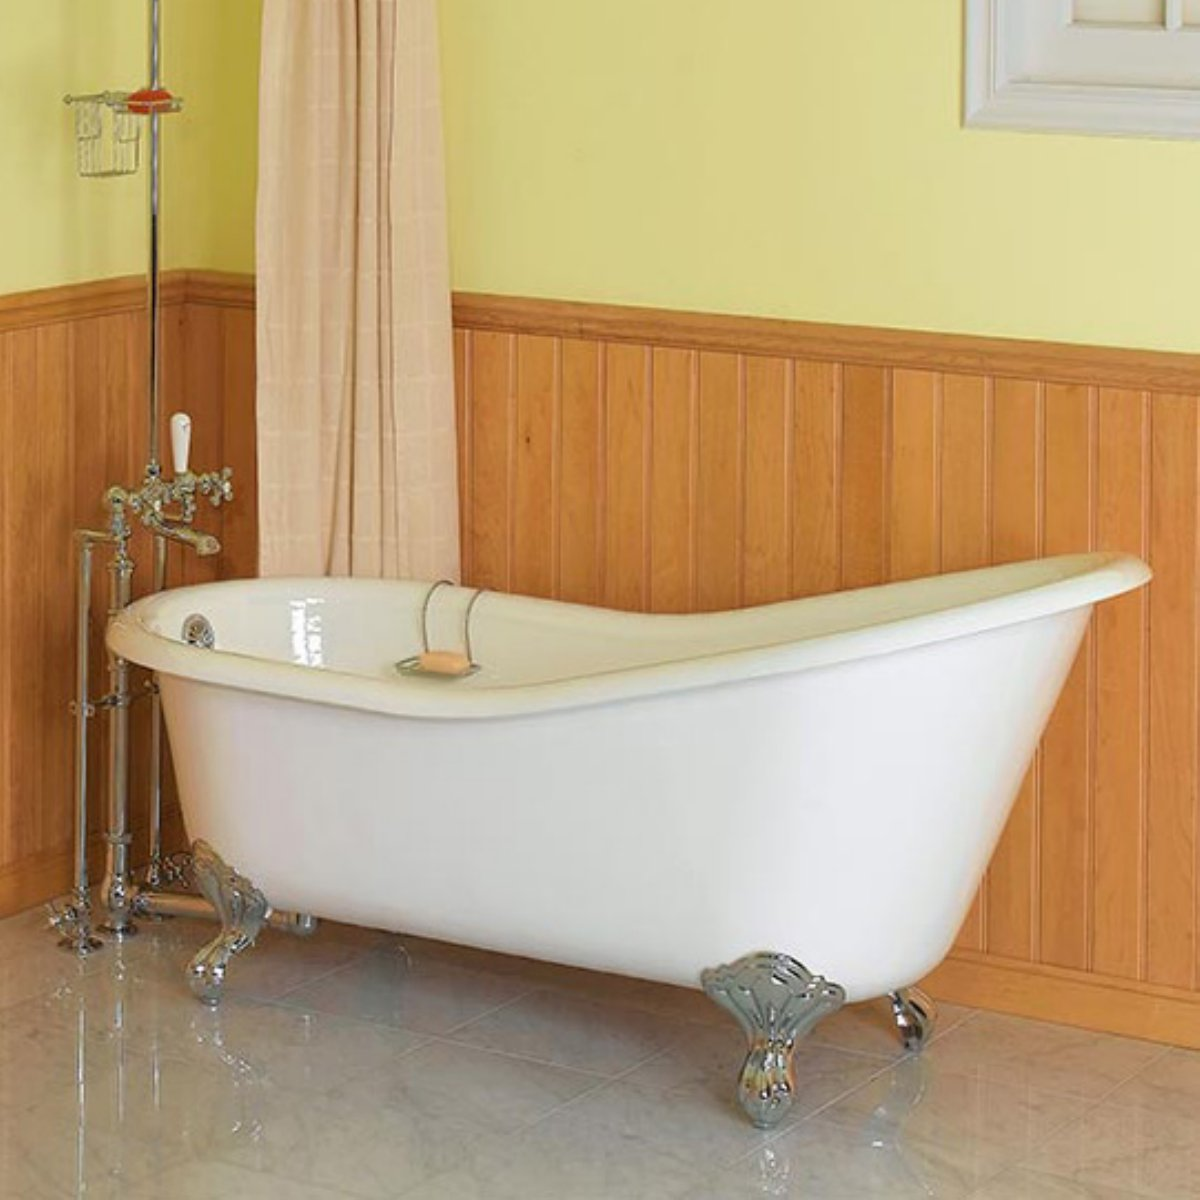 bathrooms with clawfoot tub pictures